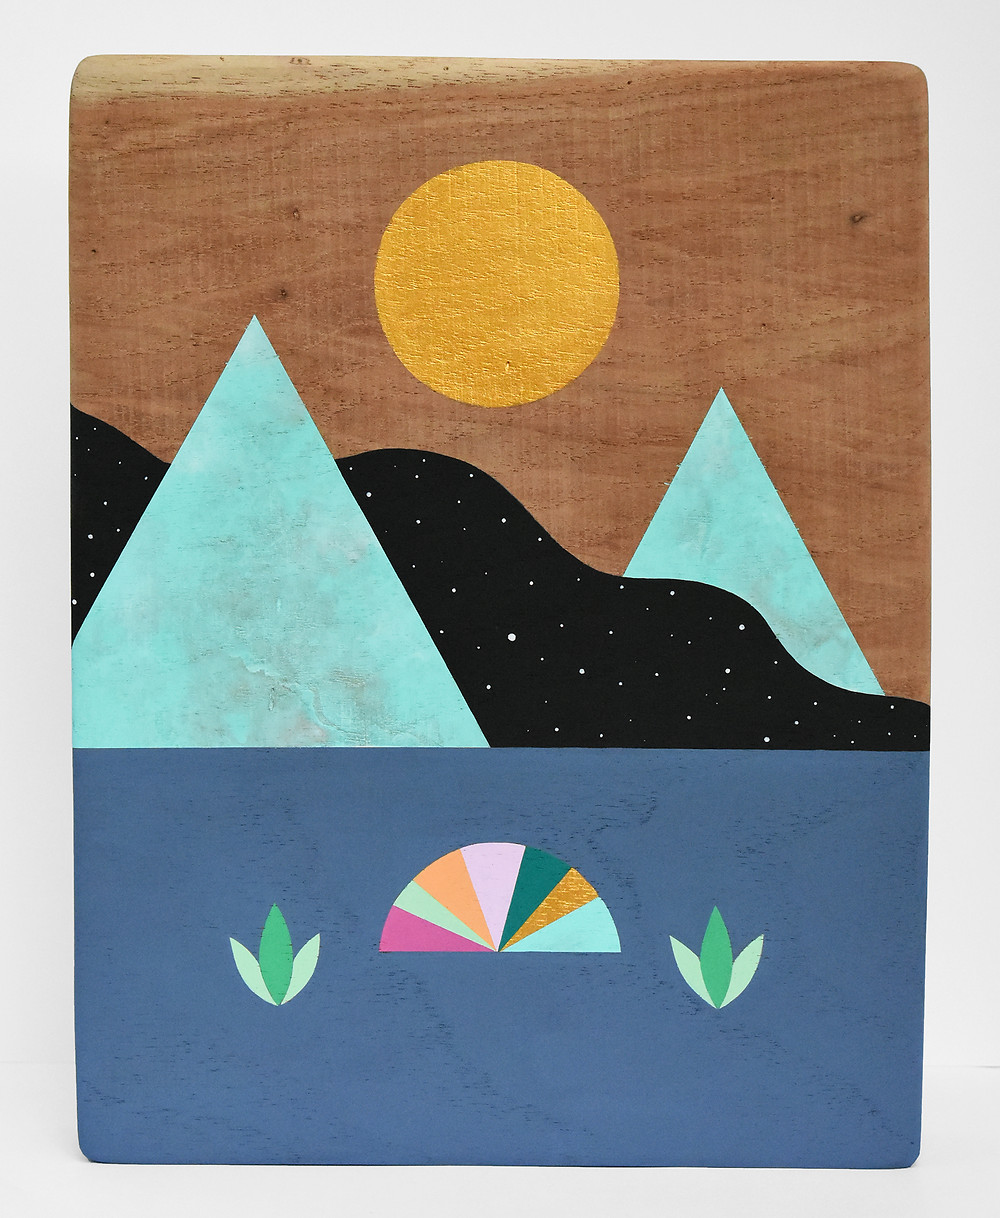 "Moving mountains # 4  9"" x 12""   Acrylic on pecan wood  2019"